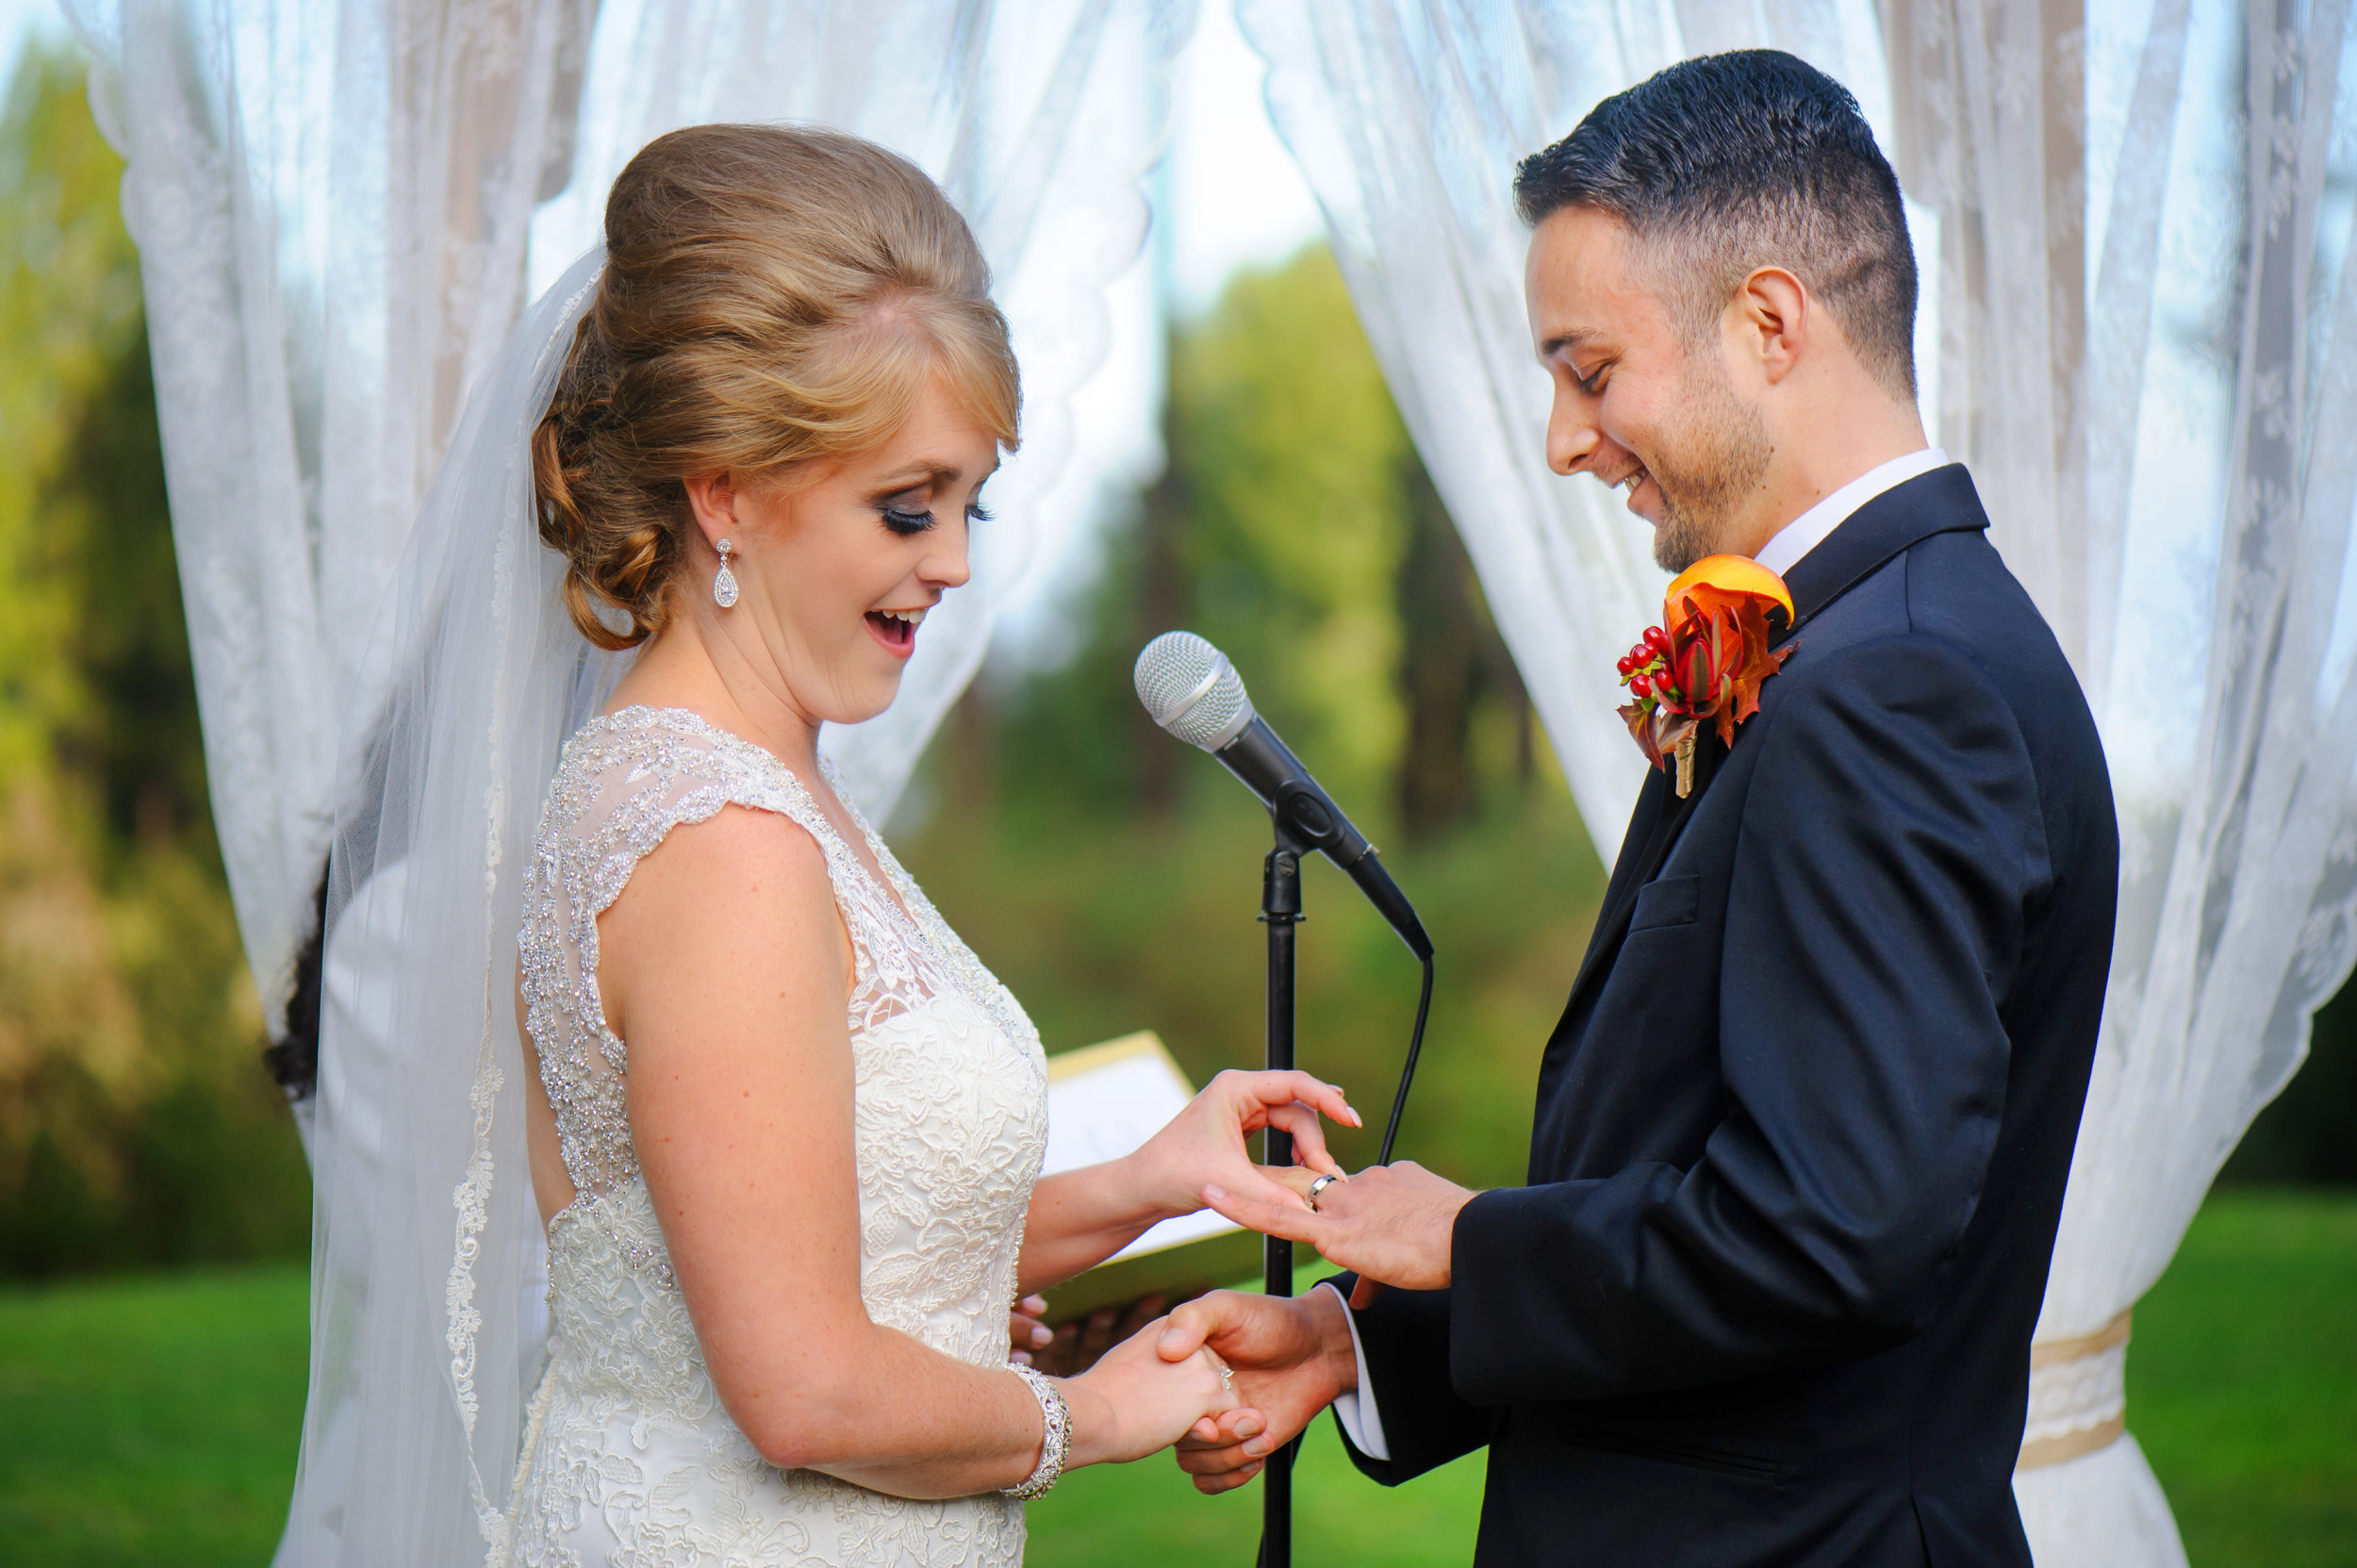 Ring exchange during wedding ceremony at The Mountain Terrace in Woodside California.